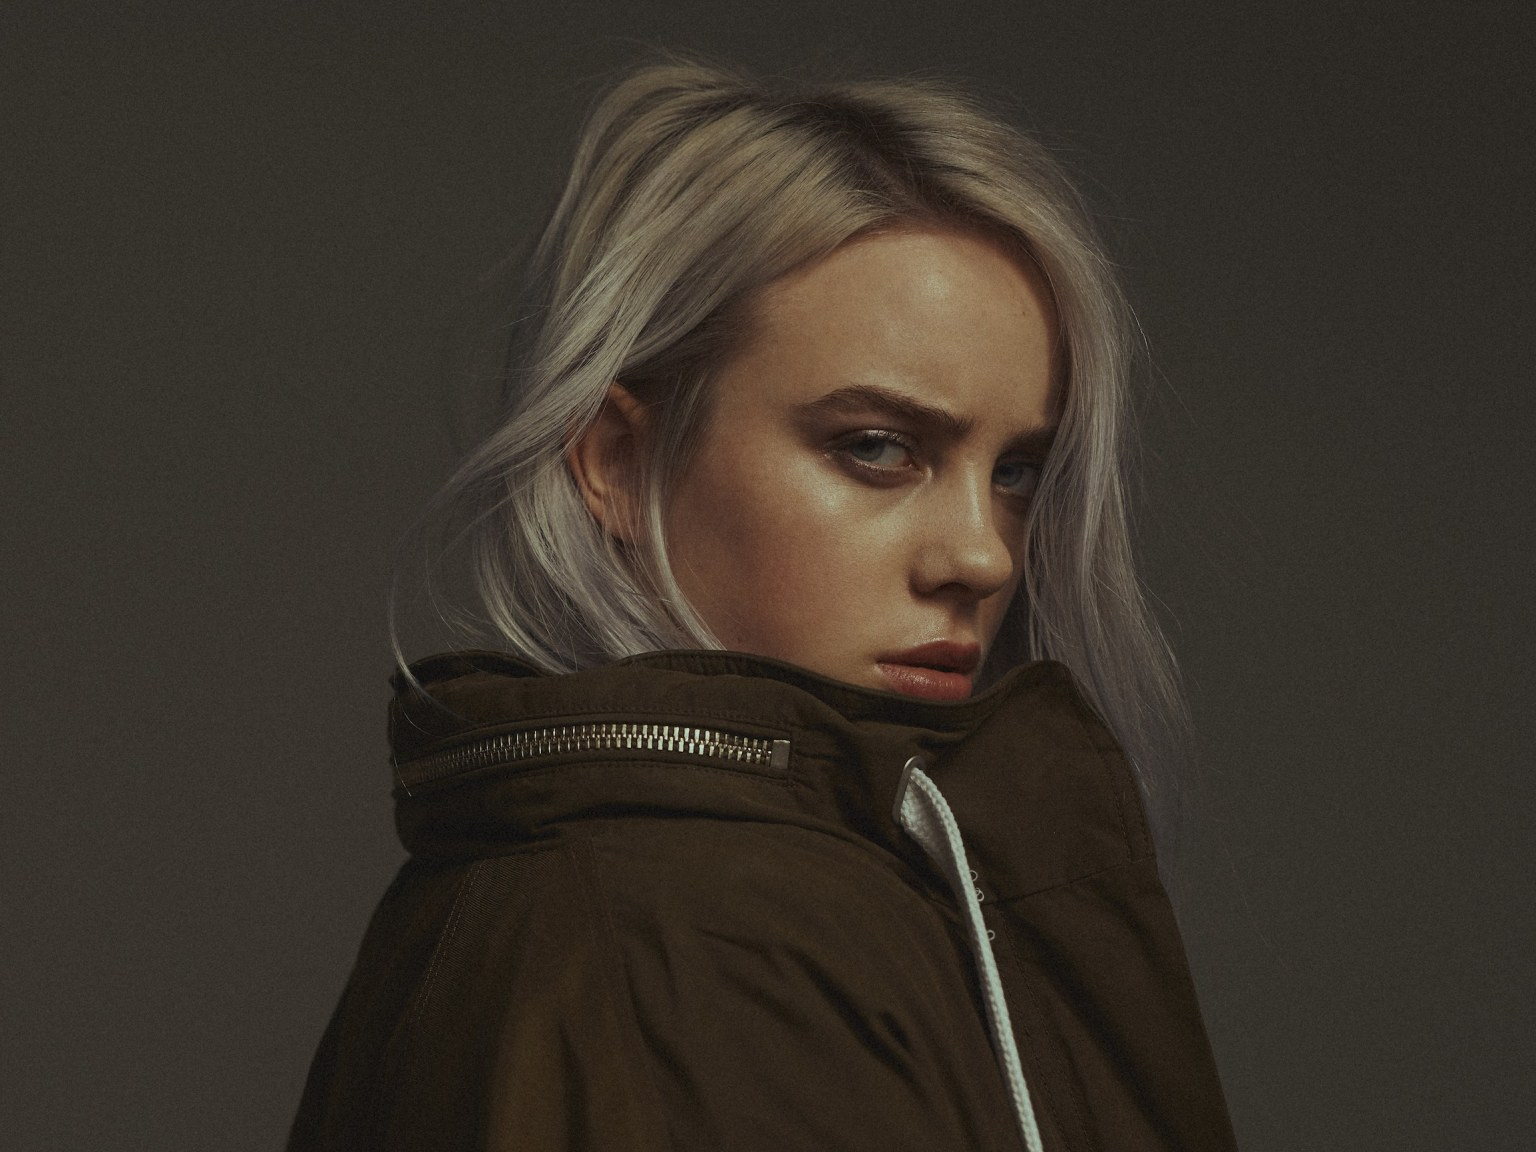 billie-eilish-files-for-restraining-order-against-man-sending-her-extremely-disturbing-letters-and-stalking-her